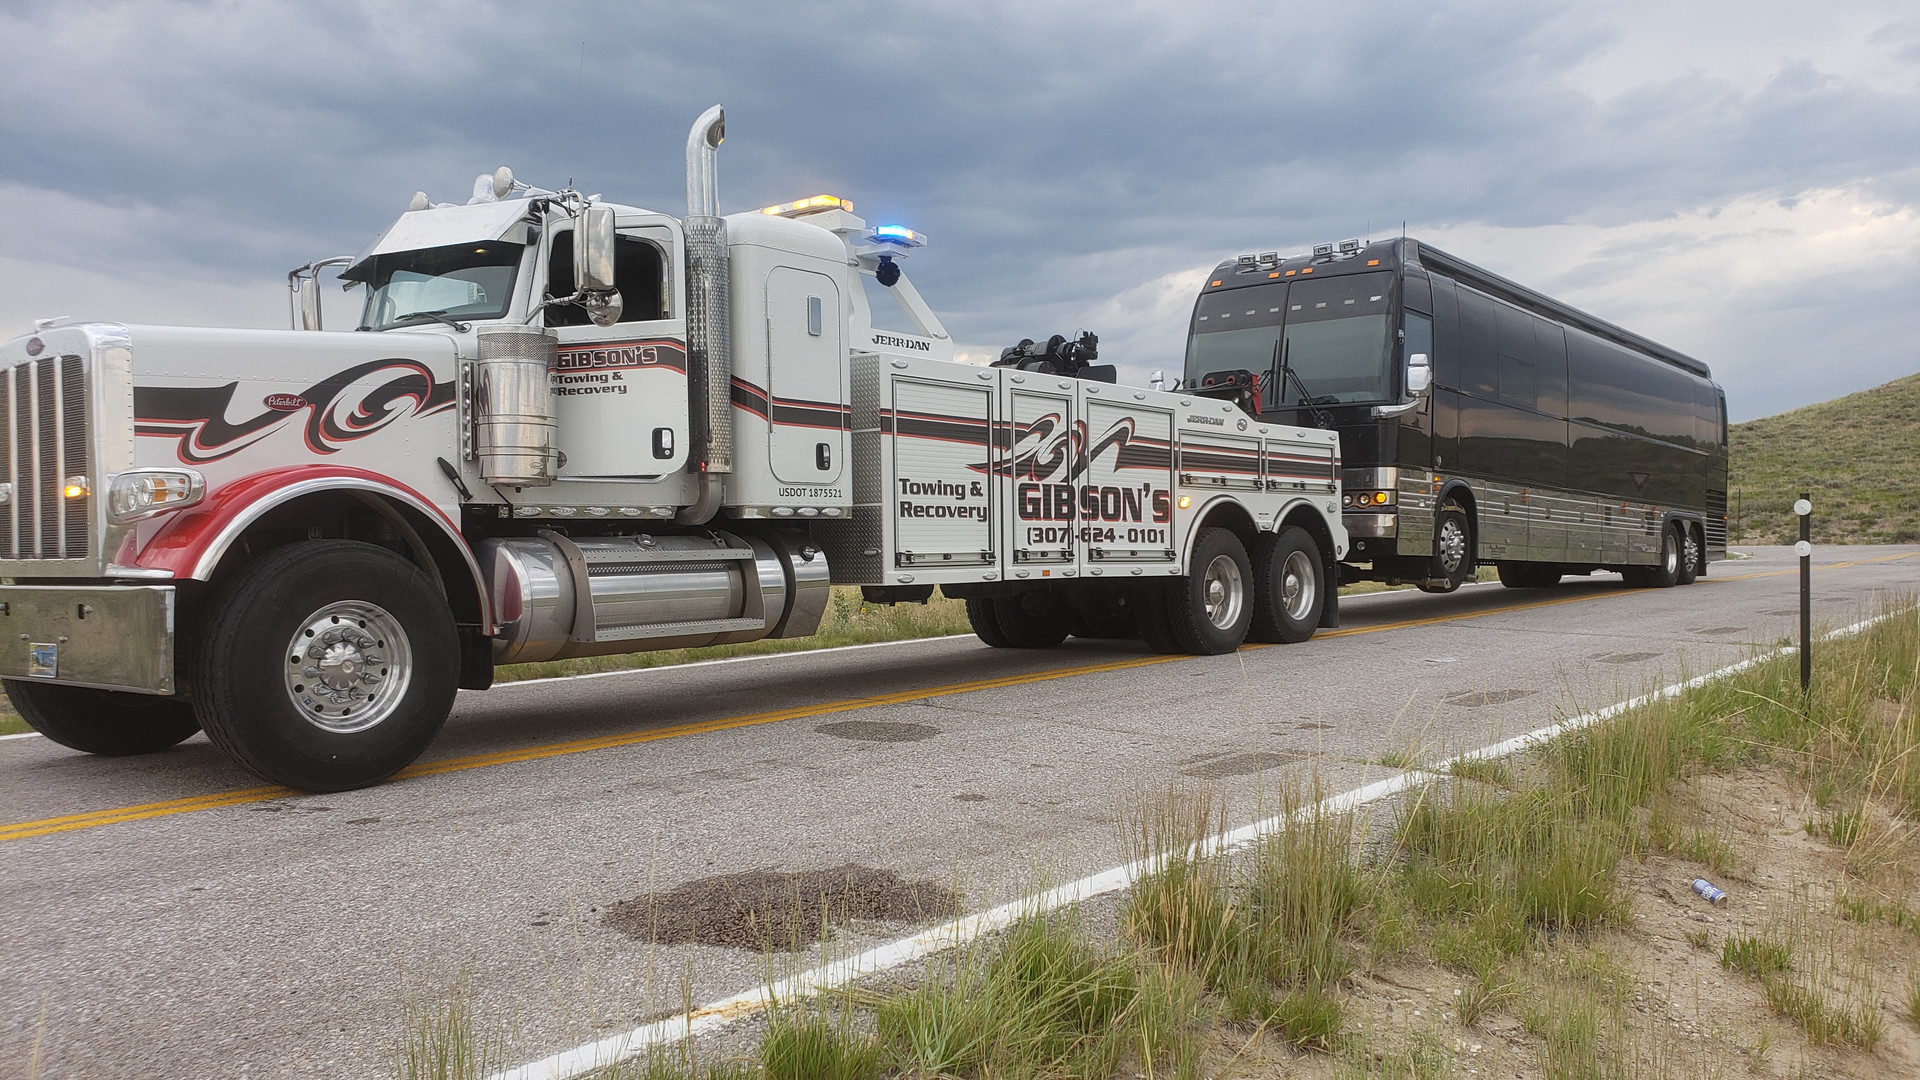 Heavy Towing in Country Star's Bus